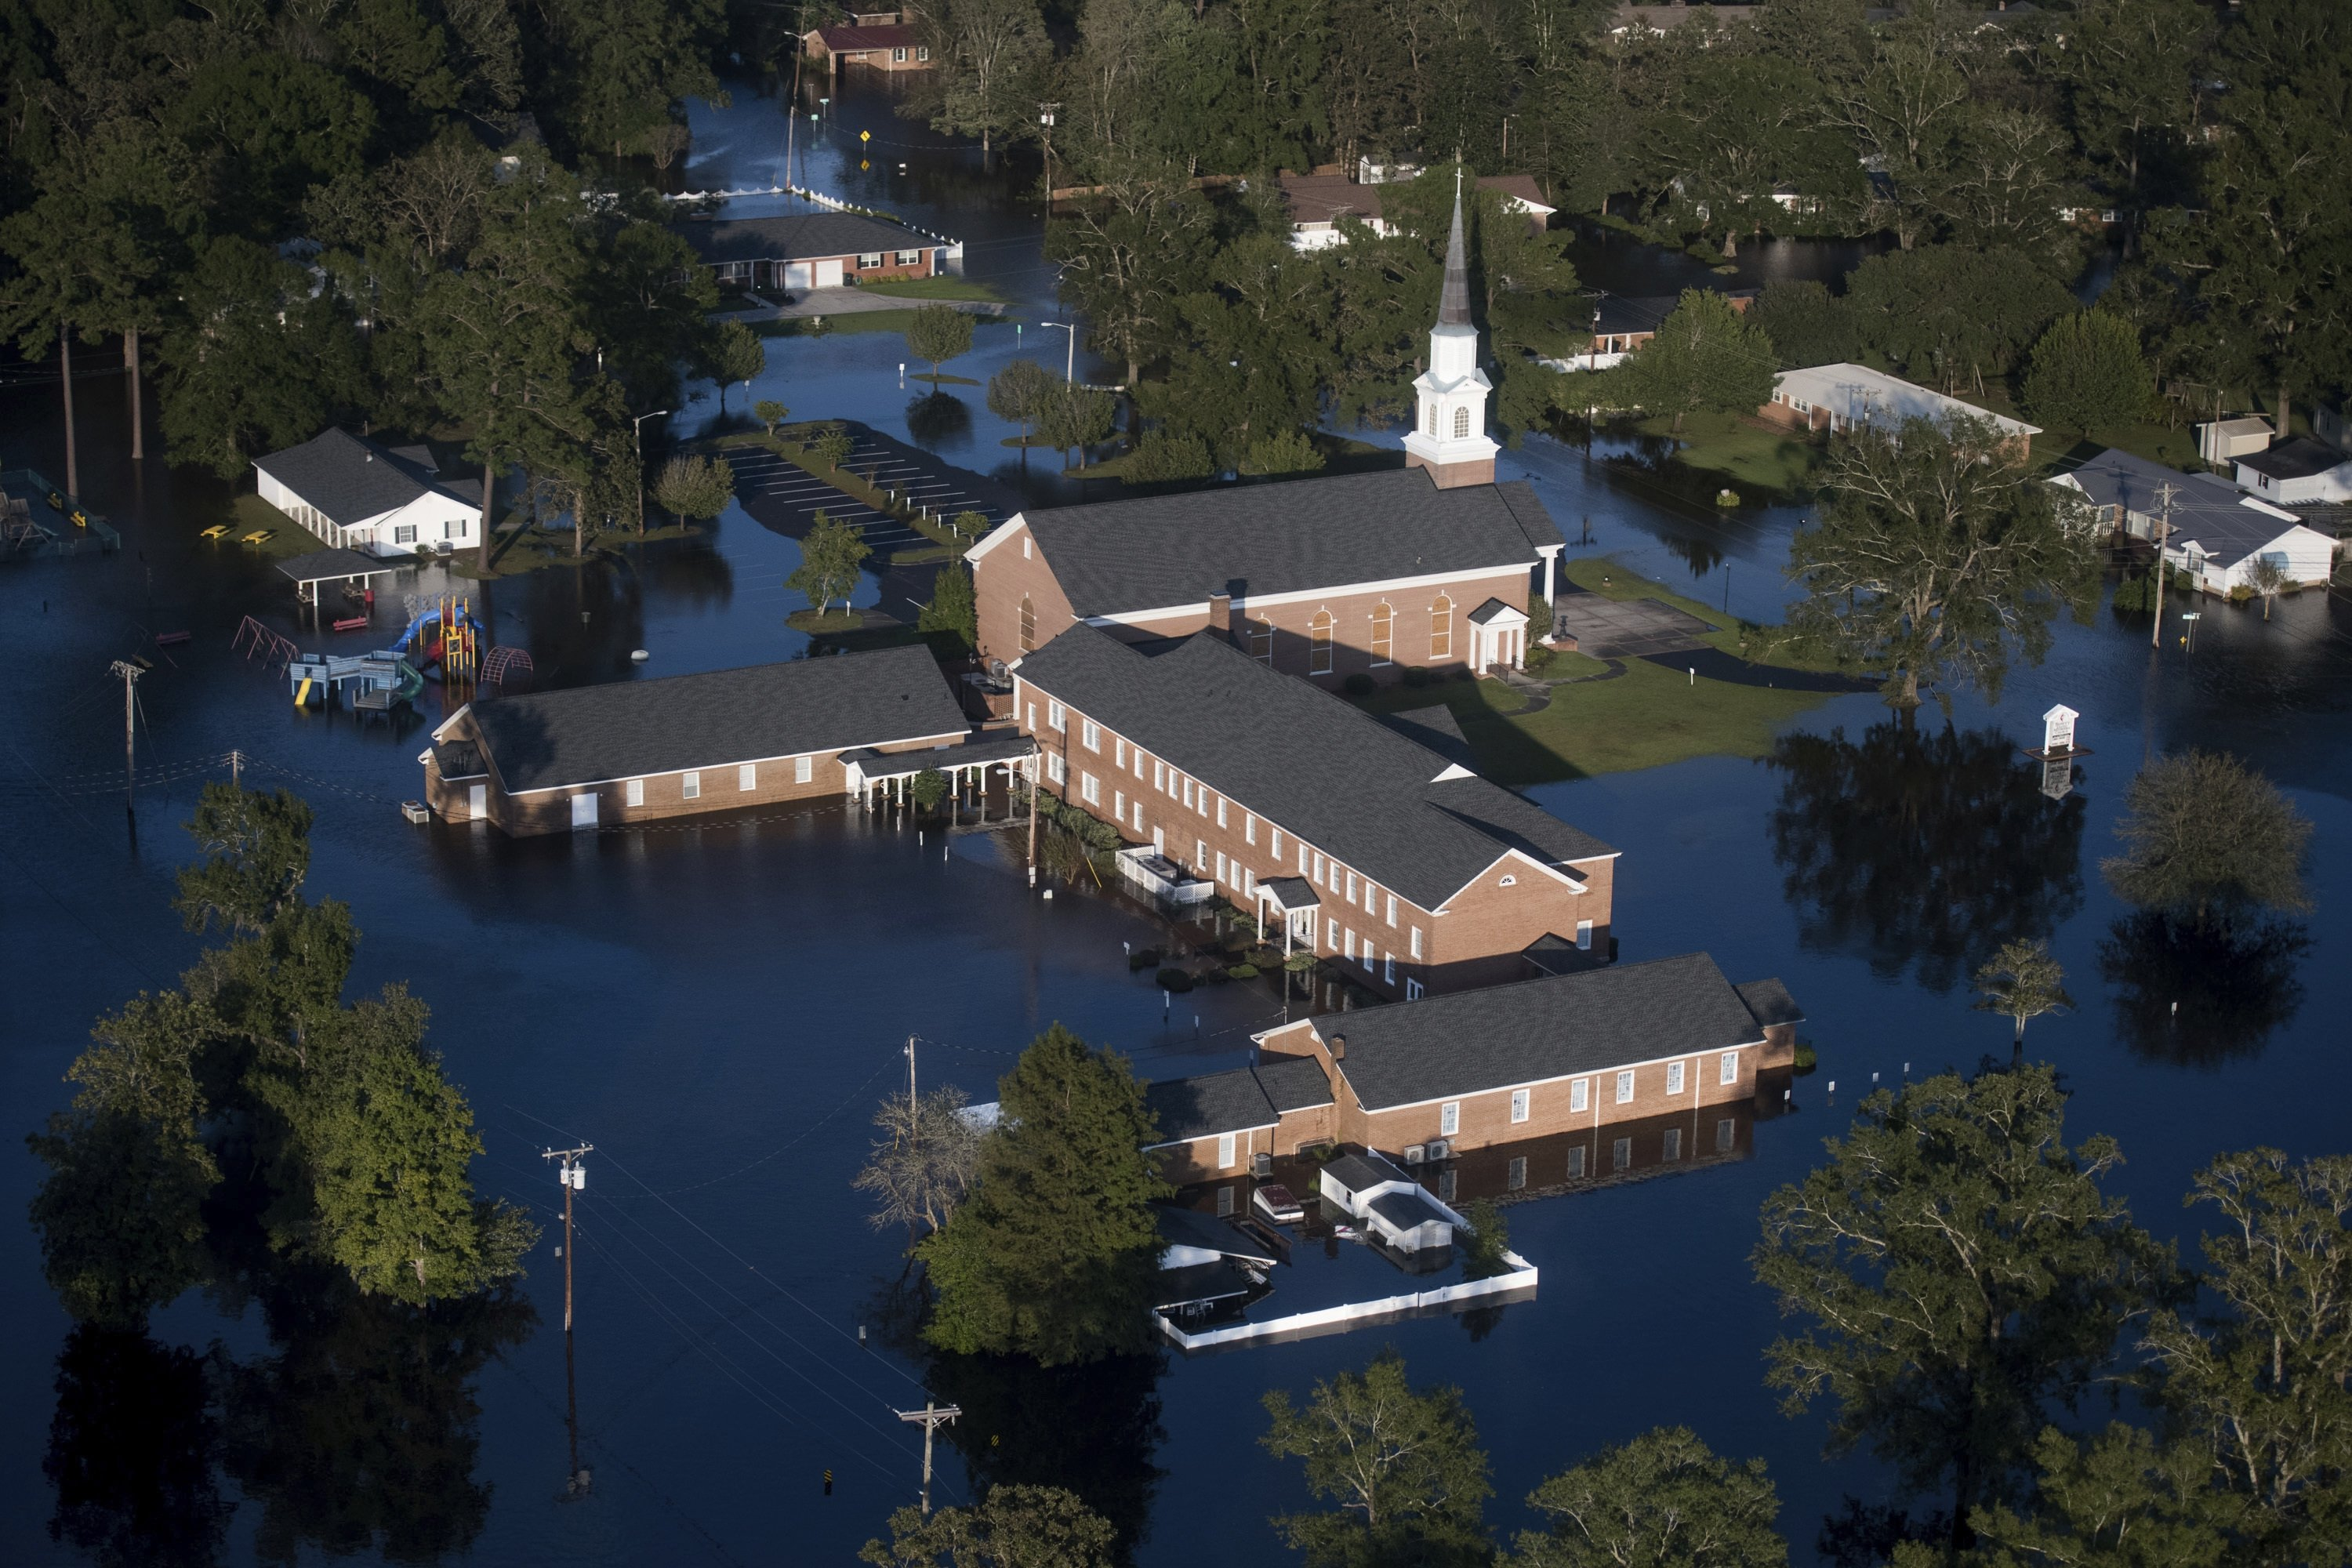 In this file photo, floodwaters surround a church and other buildings after Hurricane Florence struck the Carolinas, Conway, South Carolina, U.S., Sept. 17, 2018. (AP Photo)